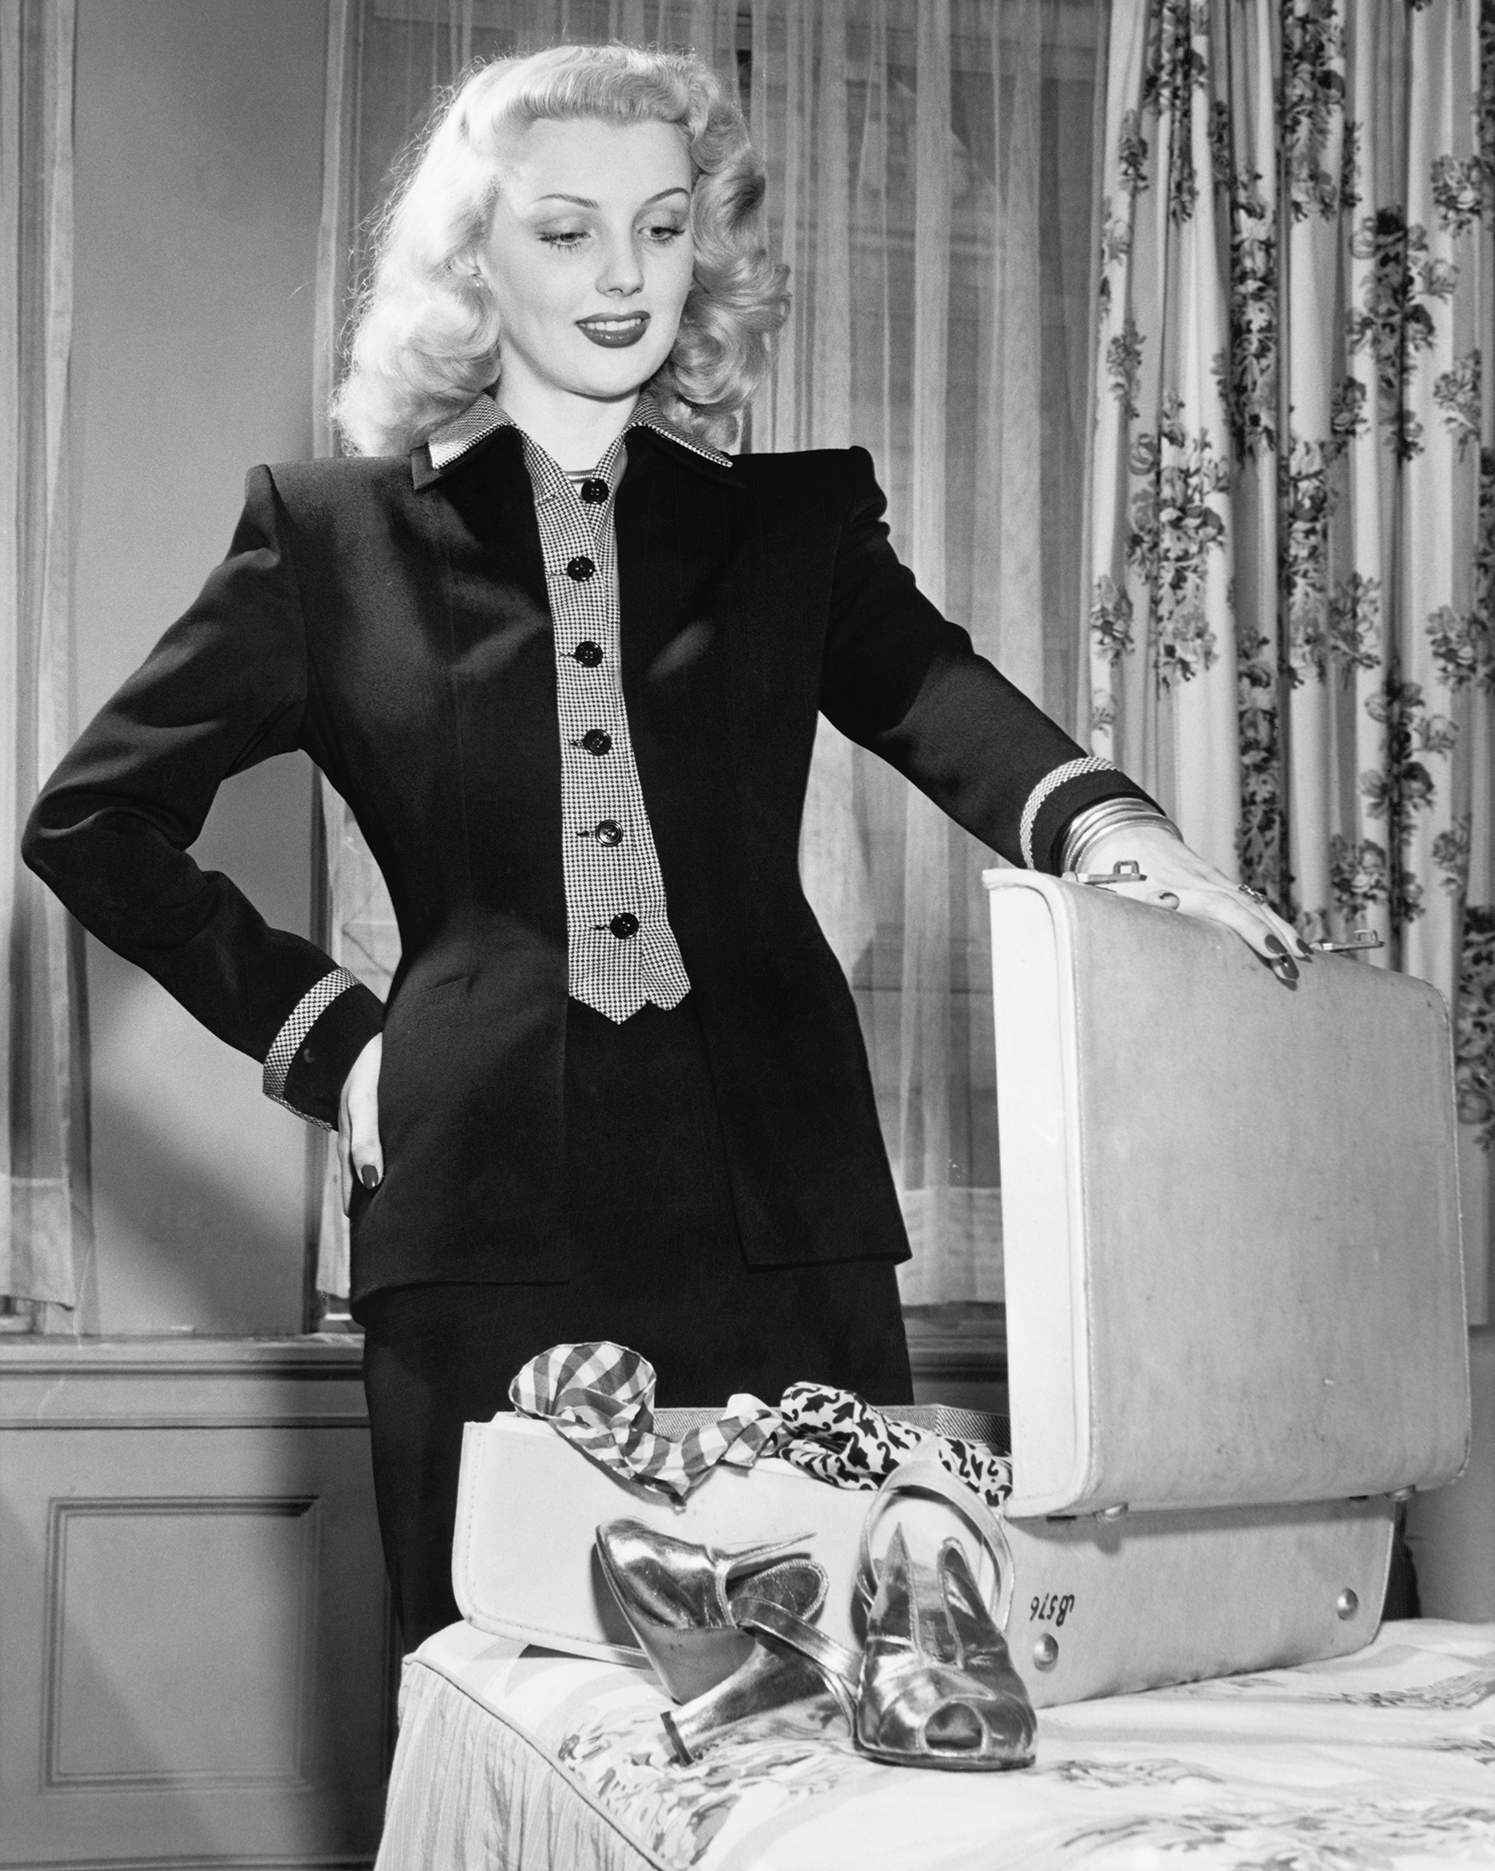 a 1940s woman opens a suitcase